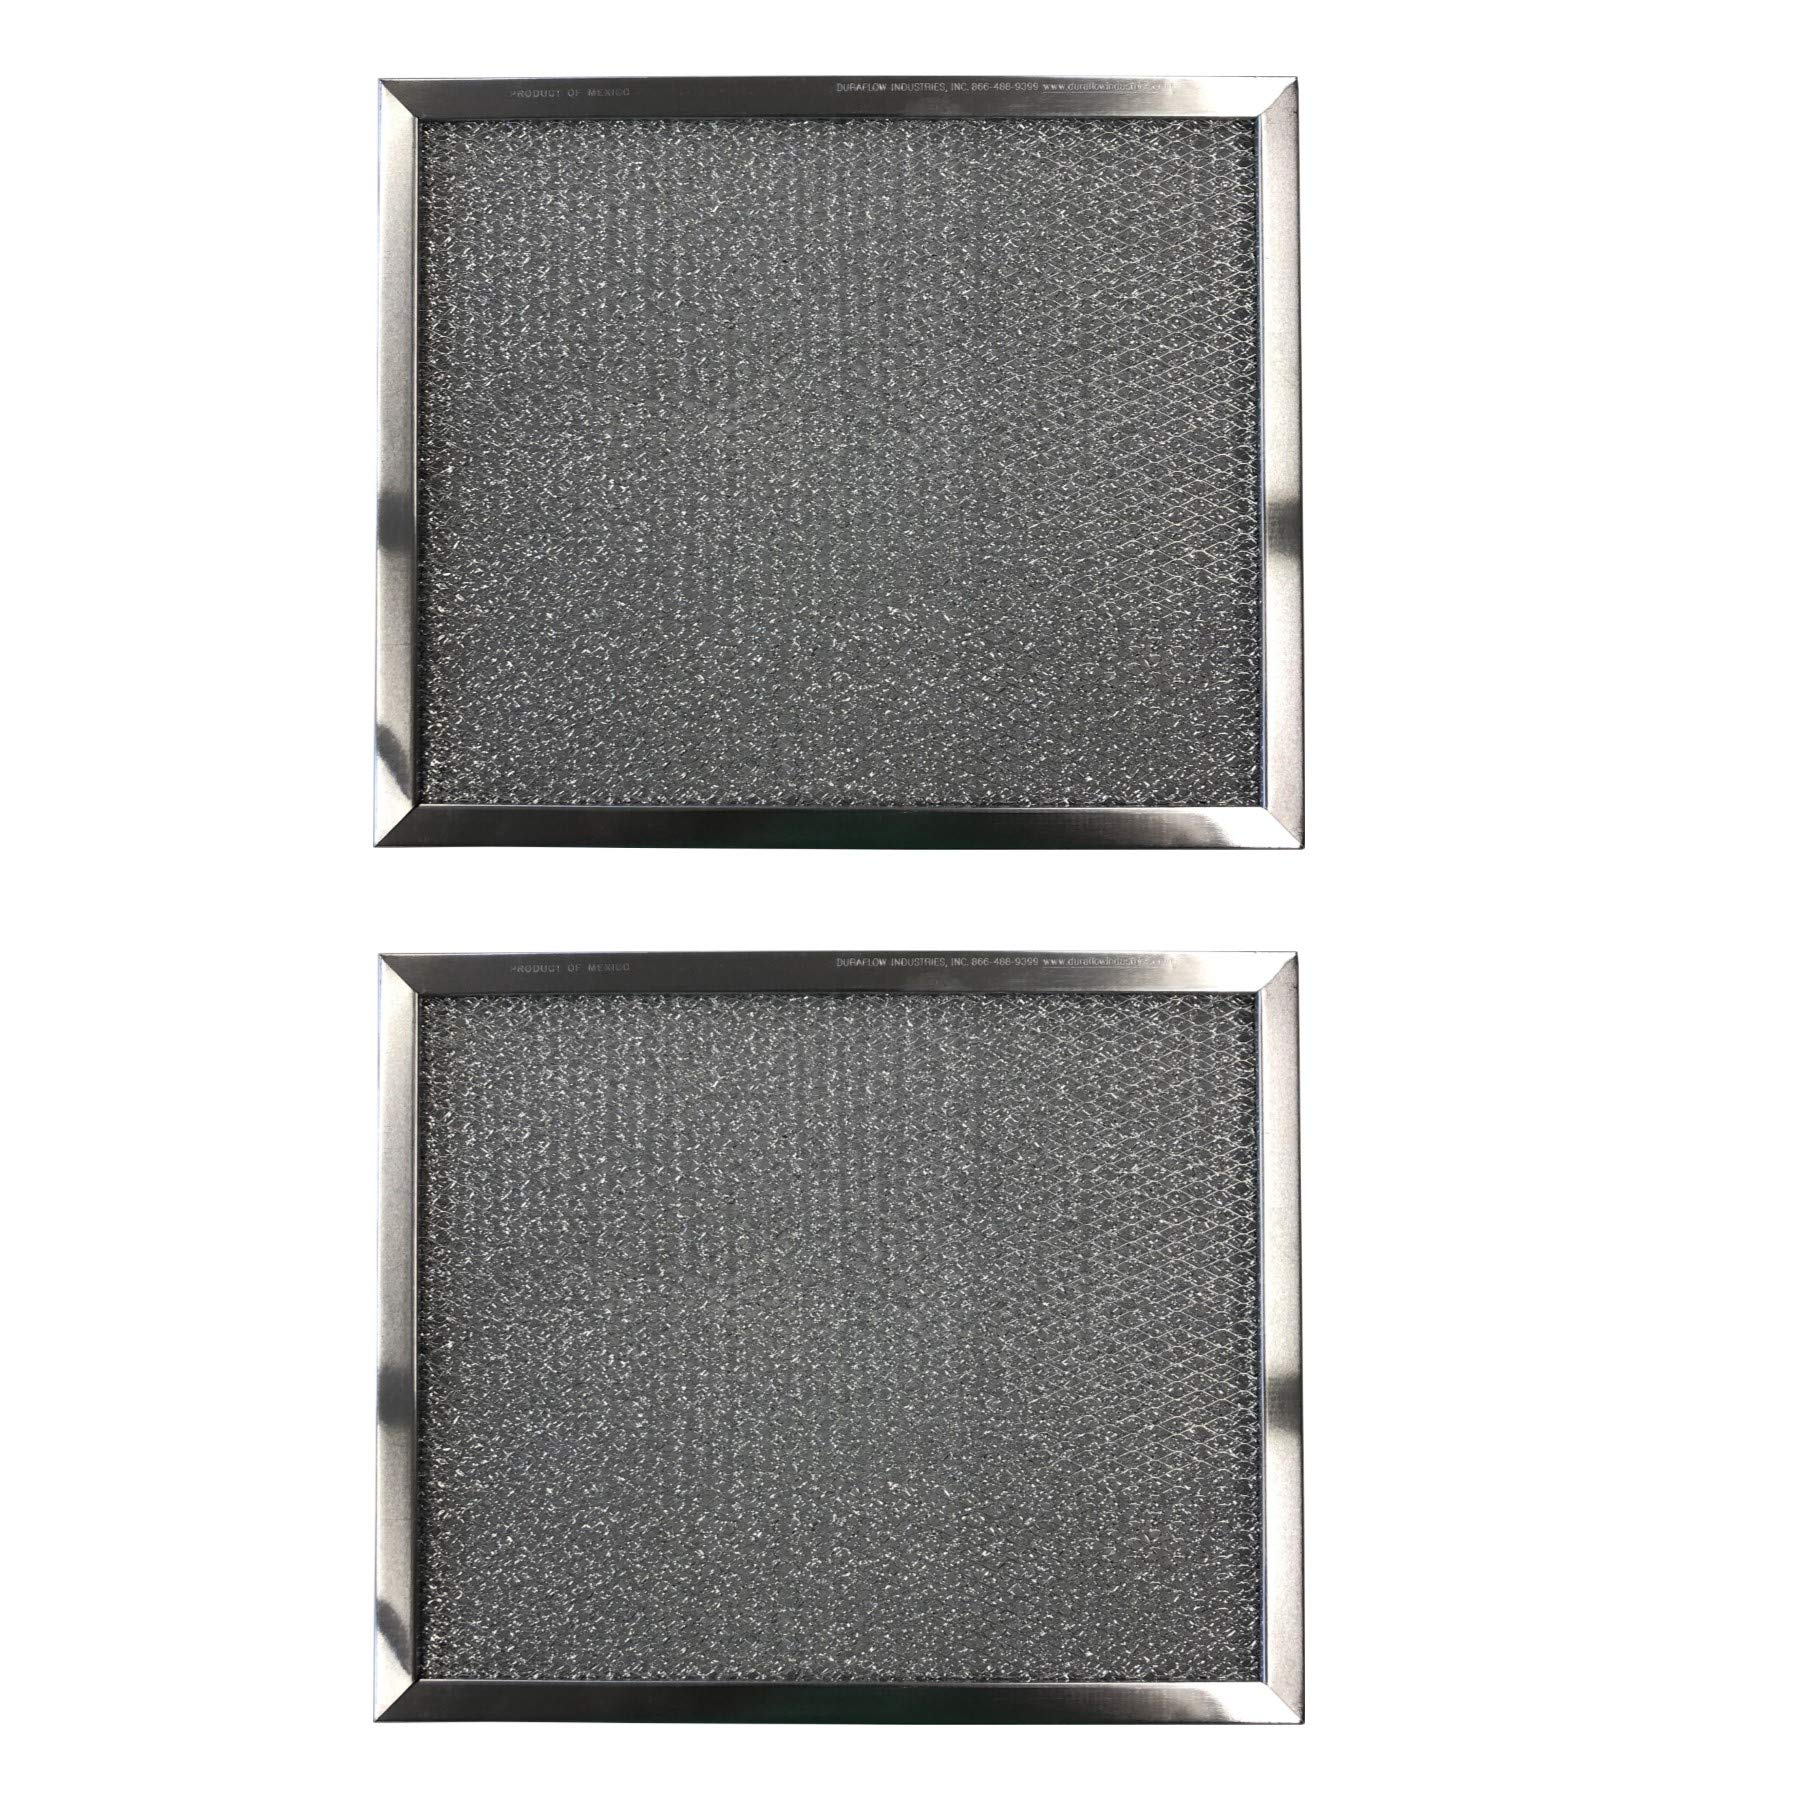 Replacement Aluminum Filters Compatible with Estate 8189890, Kitchenaid 8189890, Whirlpool 8189890,G